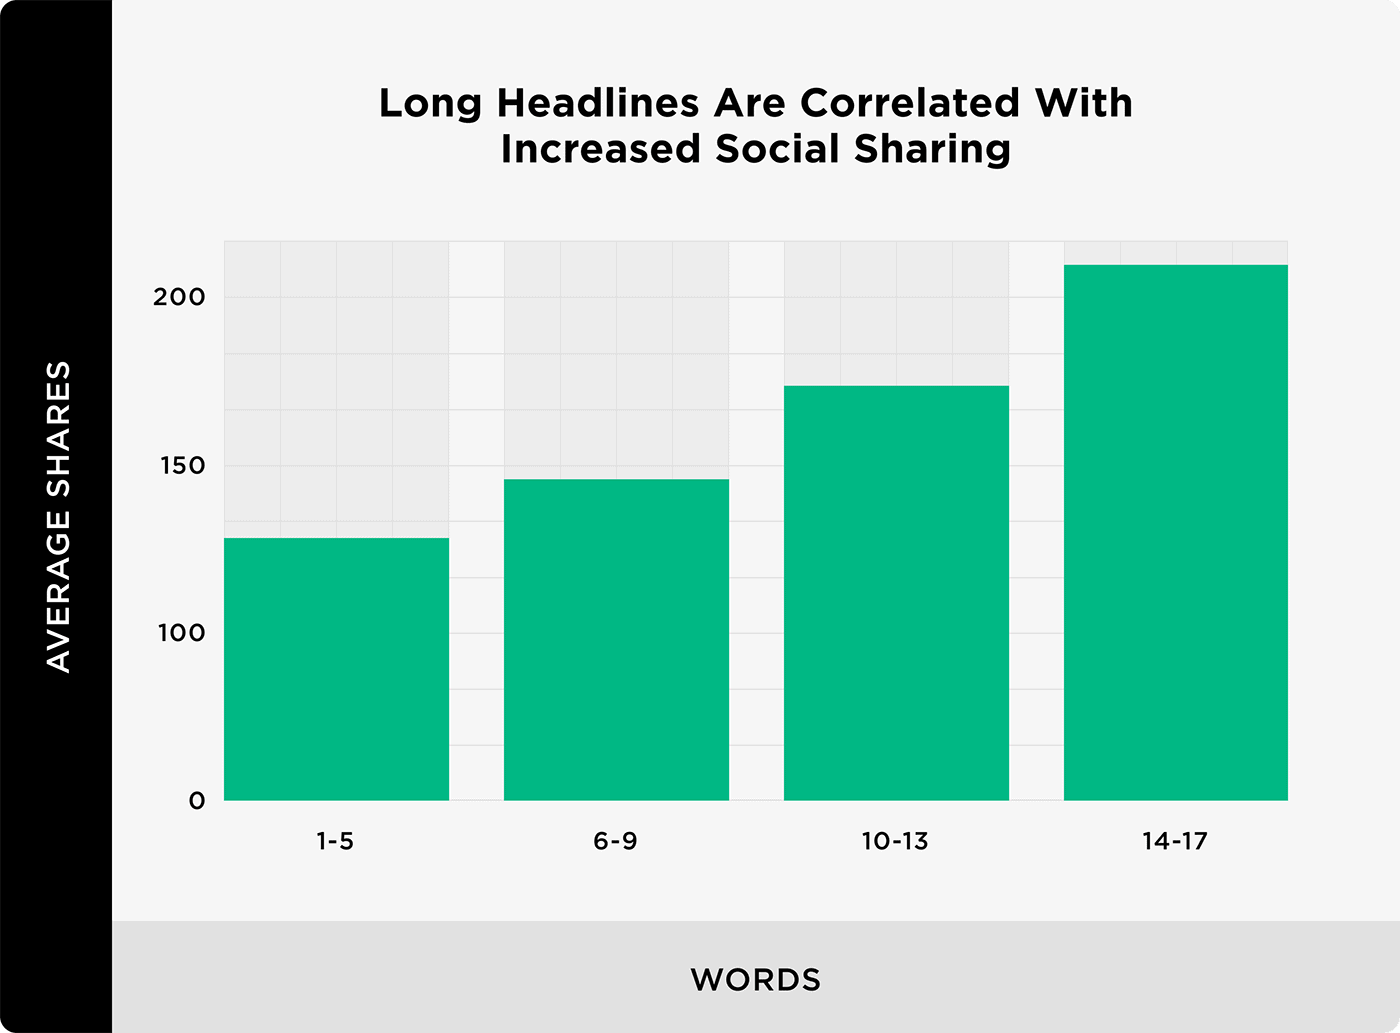 Long Headlines Are Correlated With Increased Social Sharing